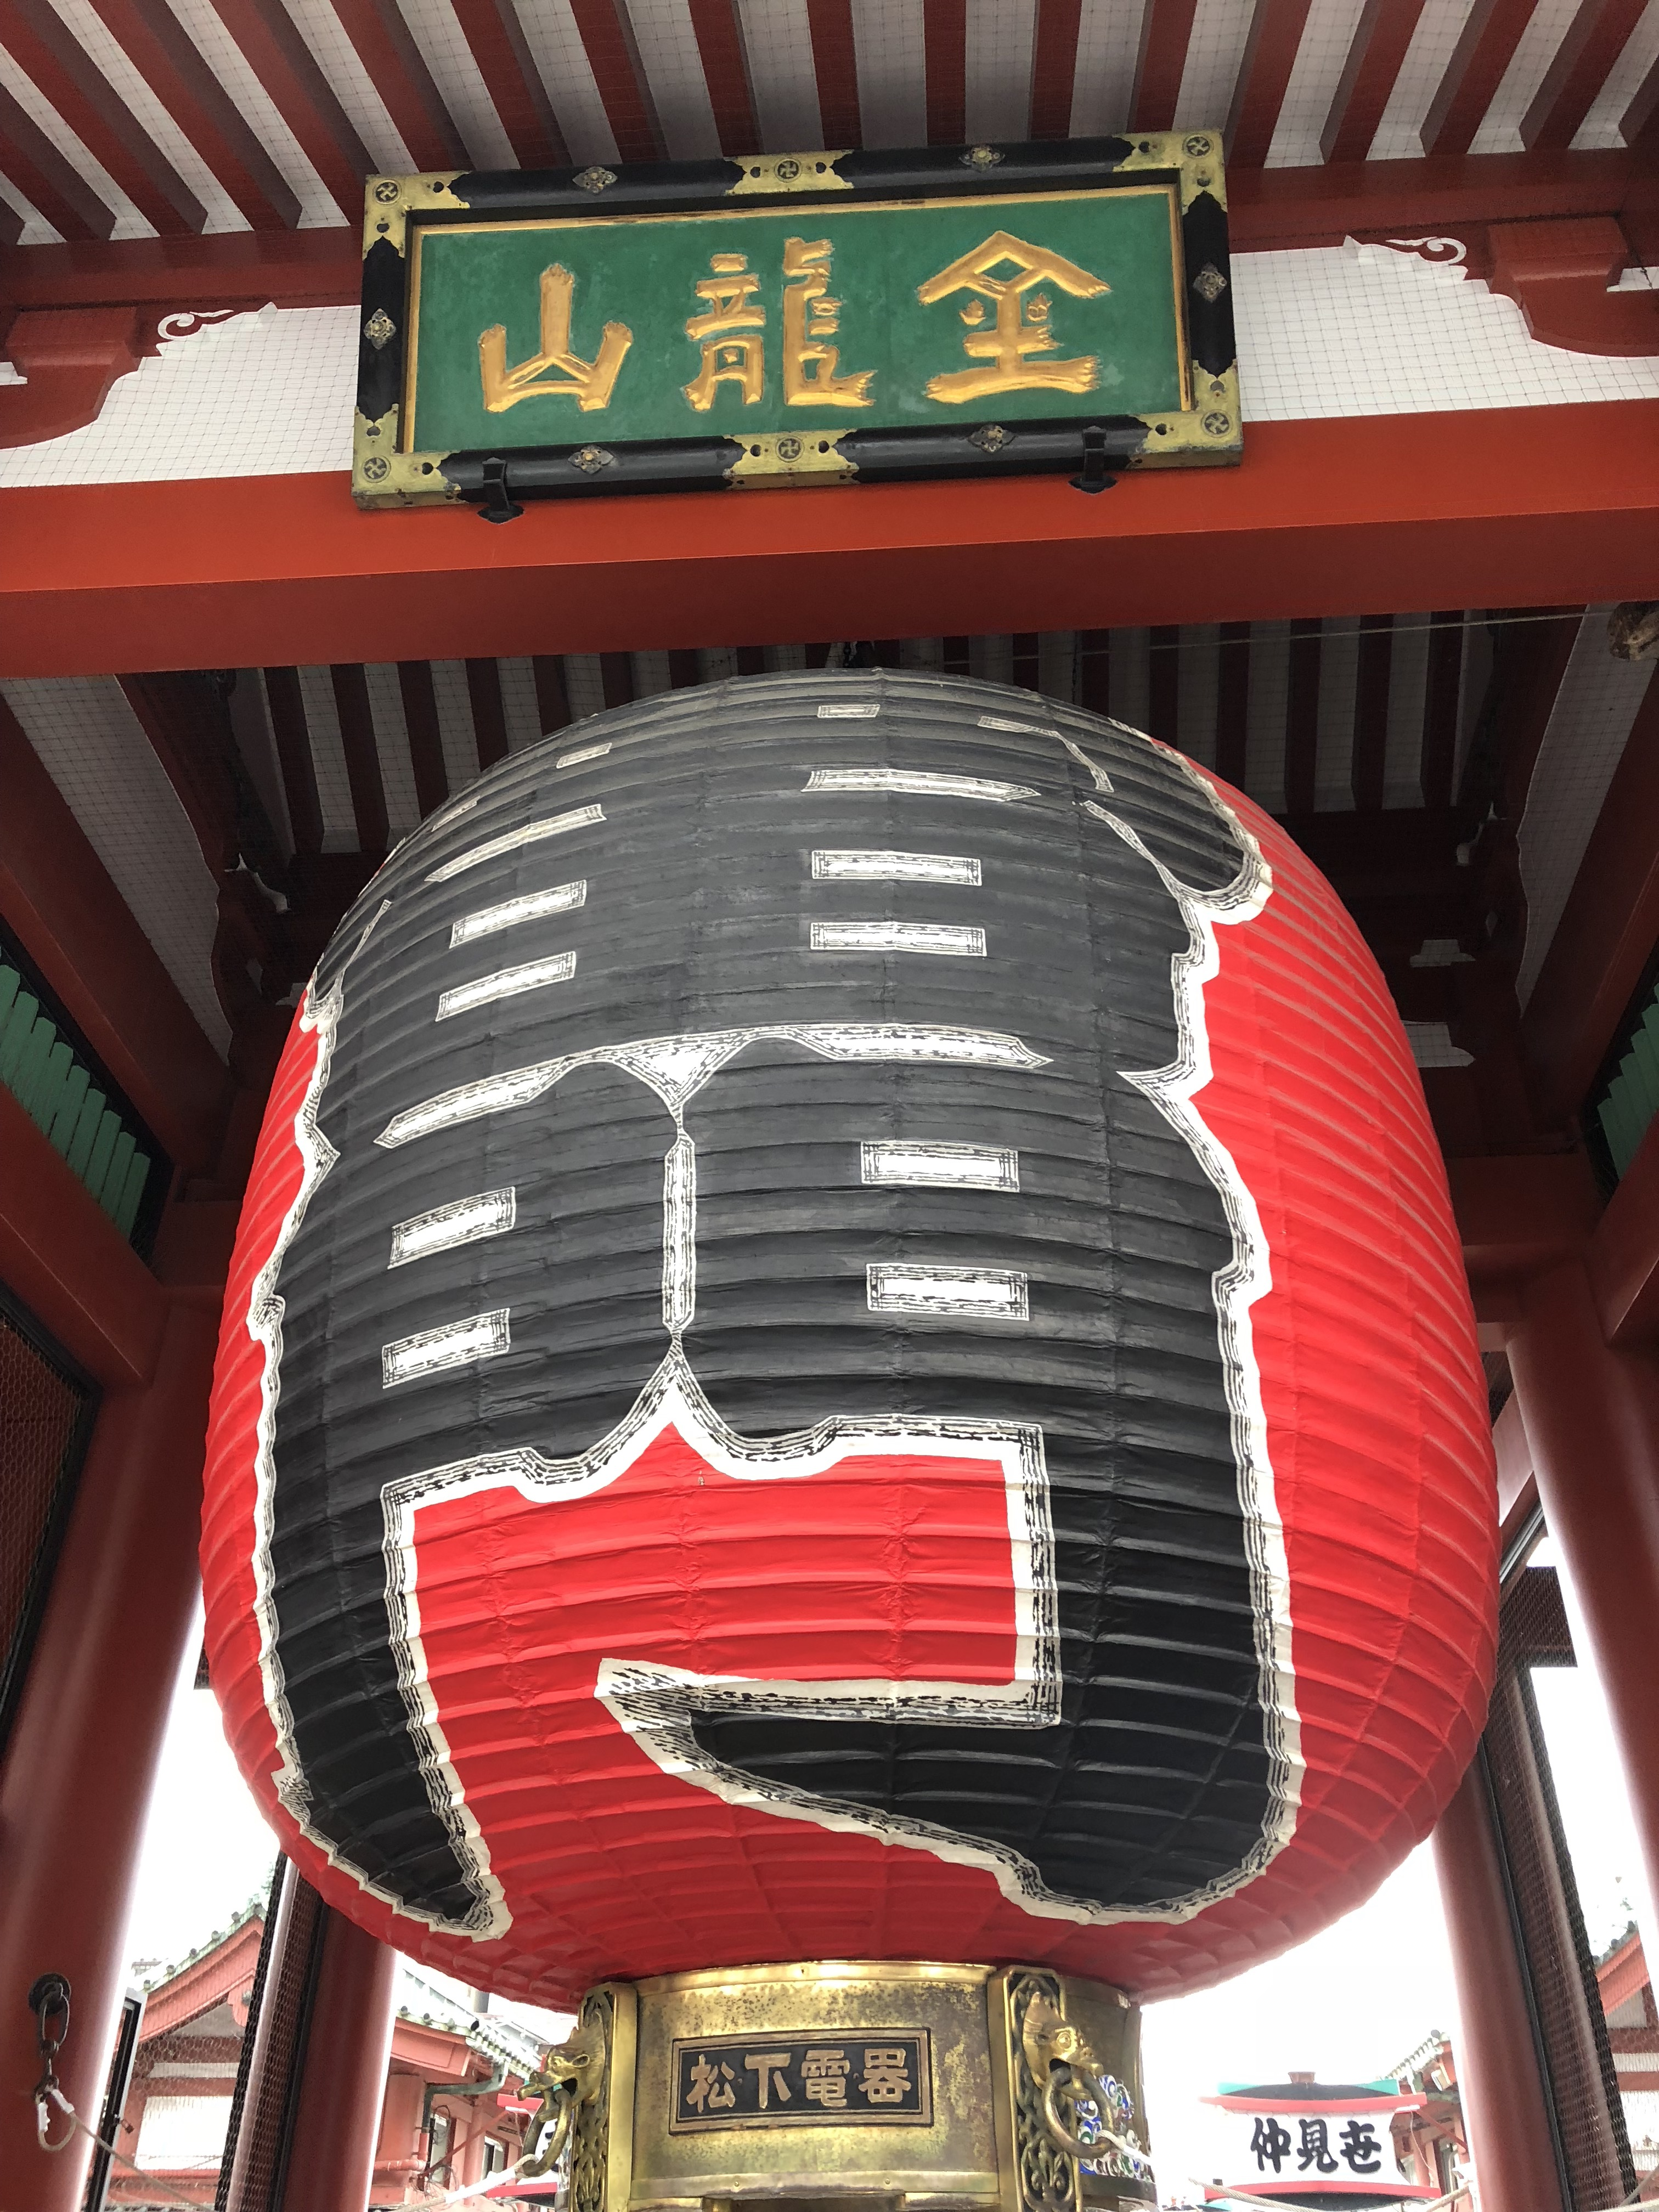 Kaminarimon, the Thunder Gate at Senso-Ji temple in Asakusa in Tokyo.